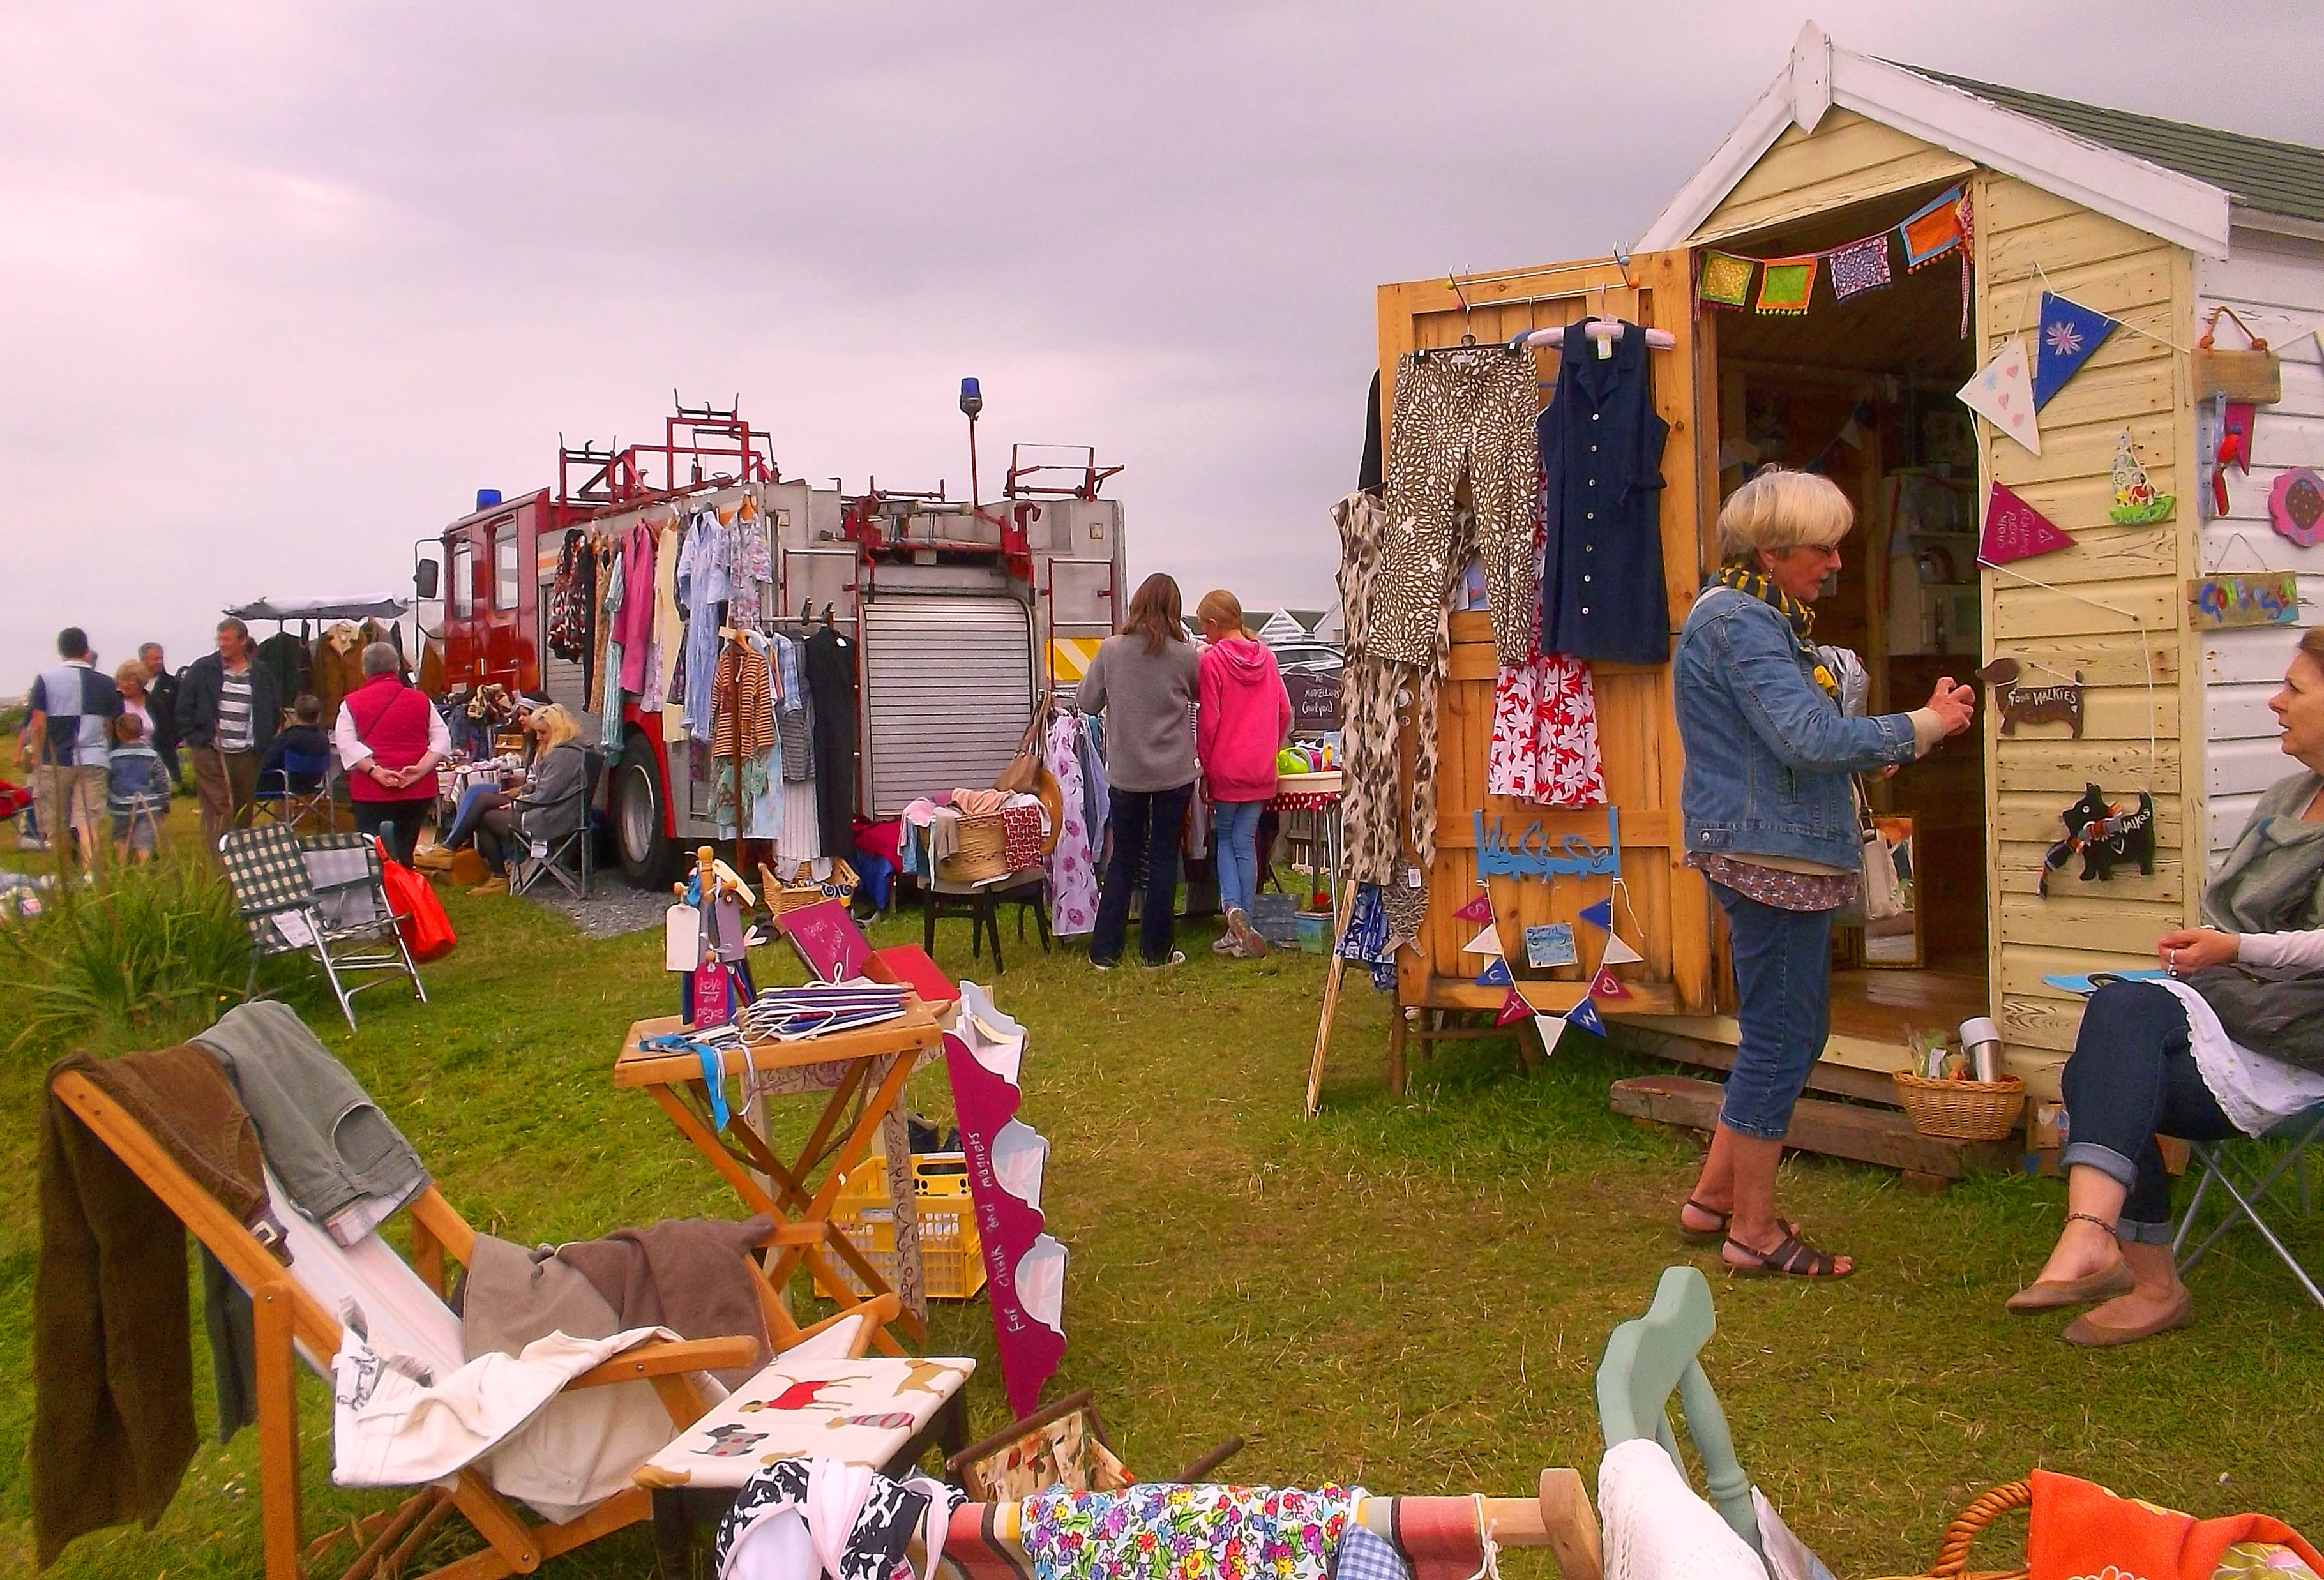 Vintage Beach Huts At The Seaside